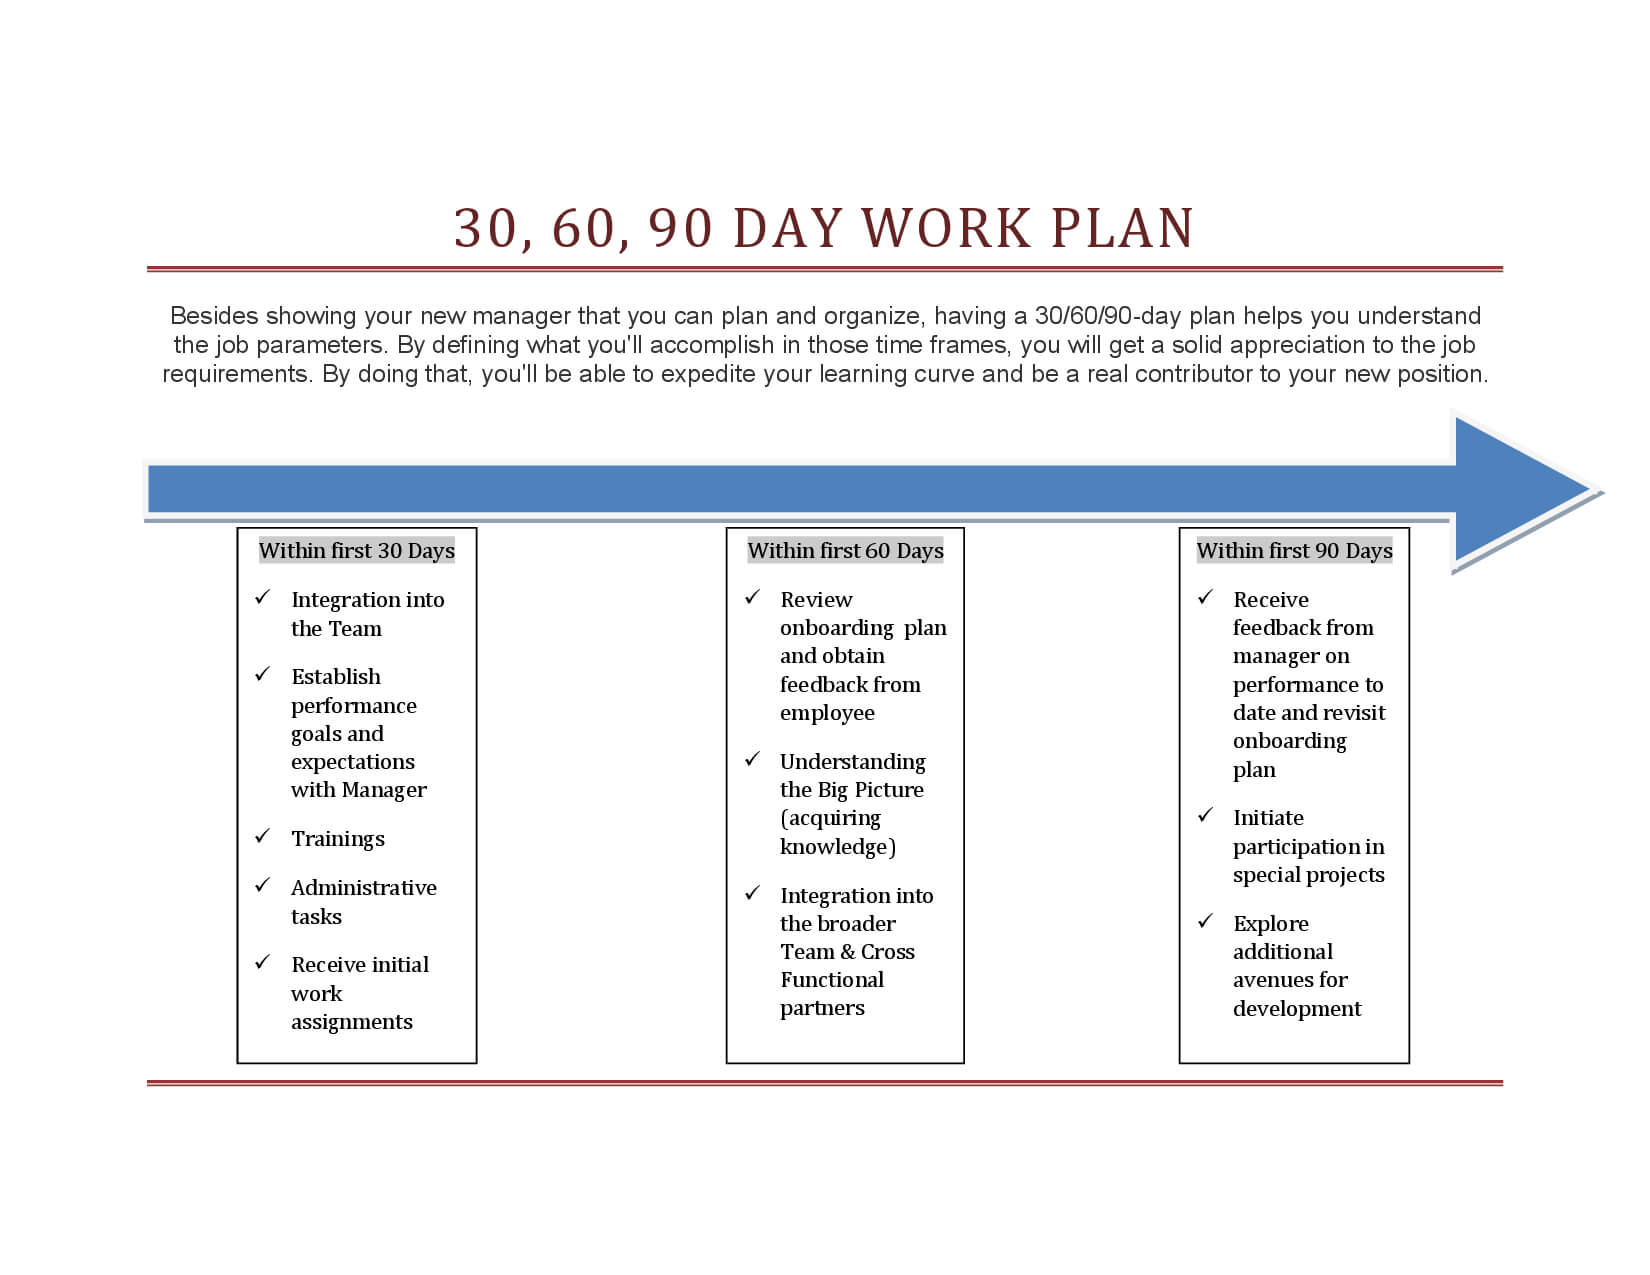 30 60 90 Day Work Plan Template | 90 Day Plan, How To Plan Inside 30 60 90 Day Plan Template Word